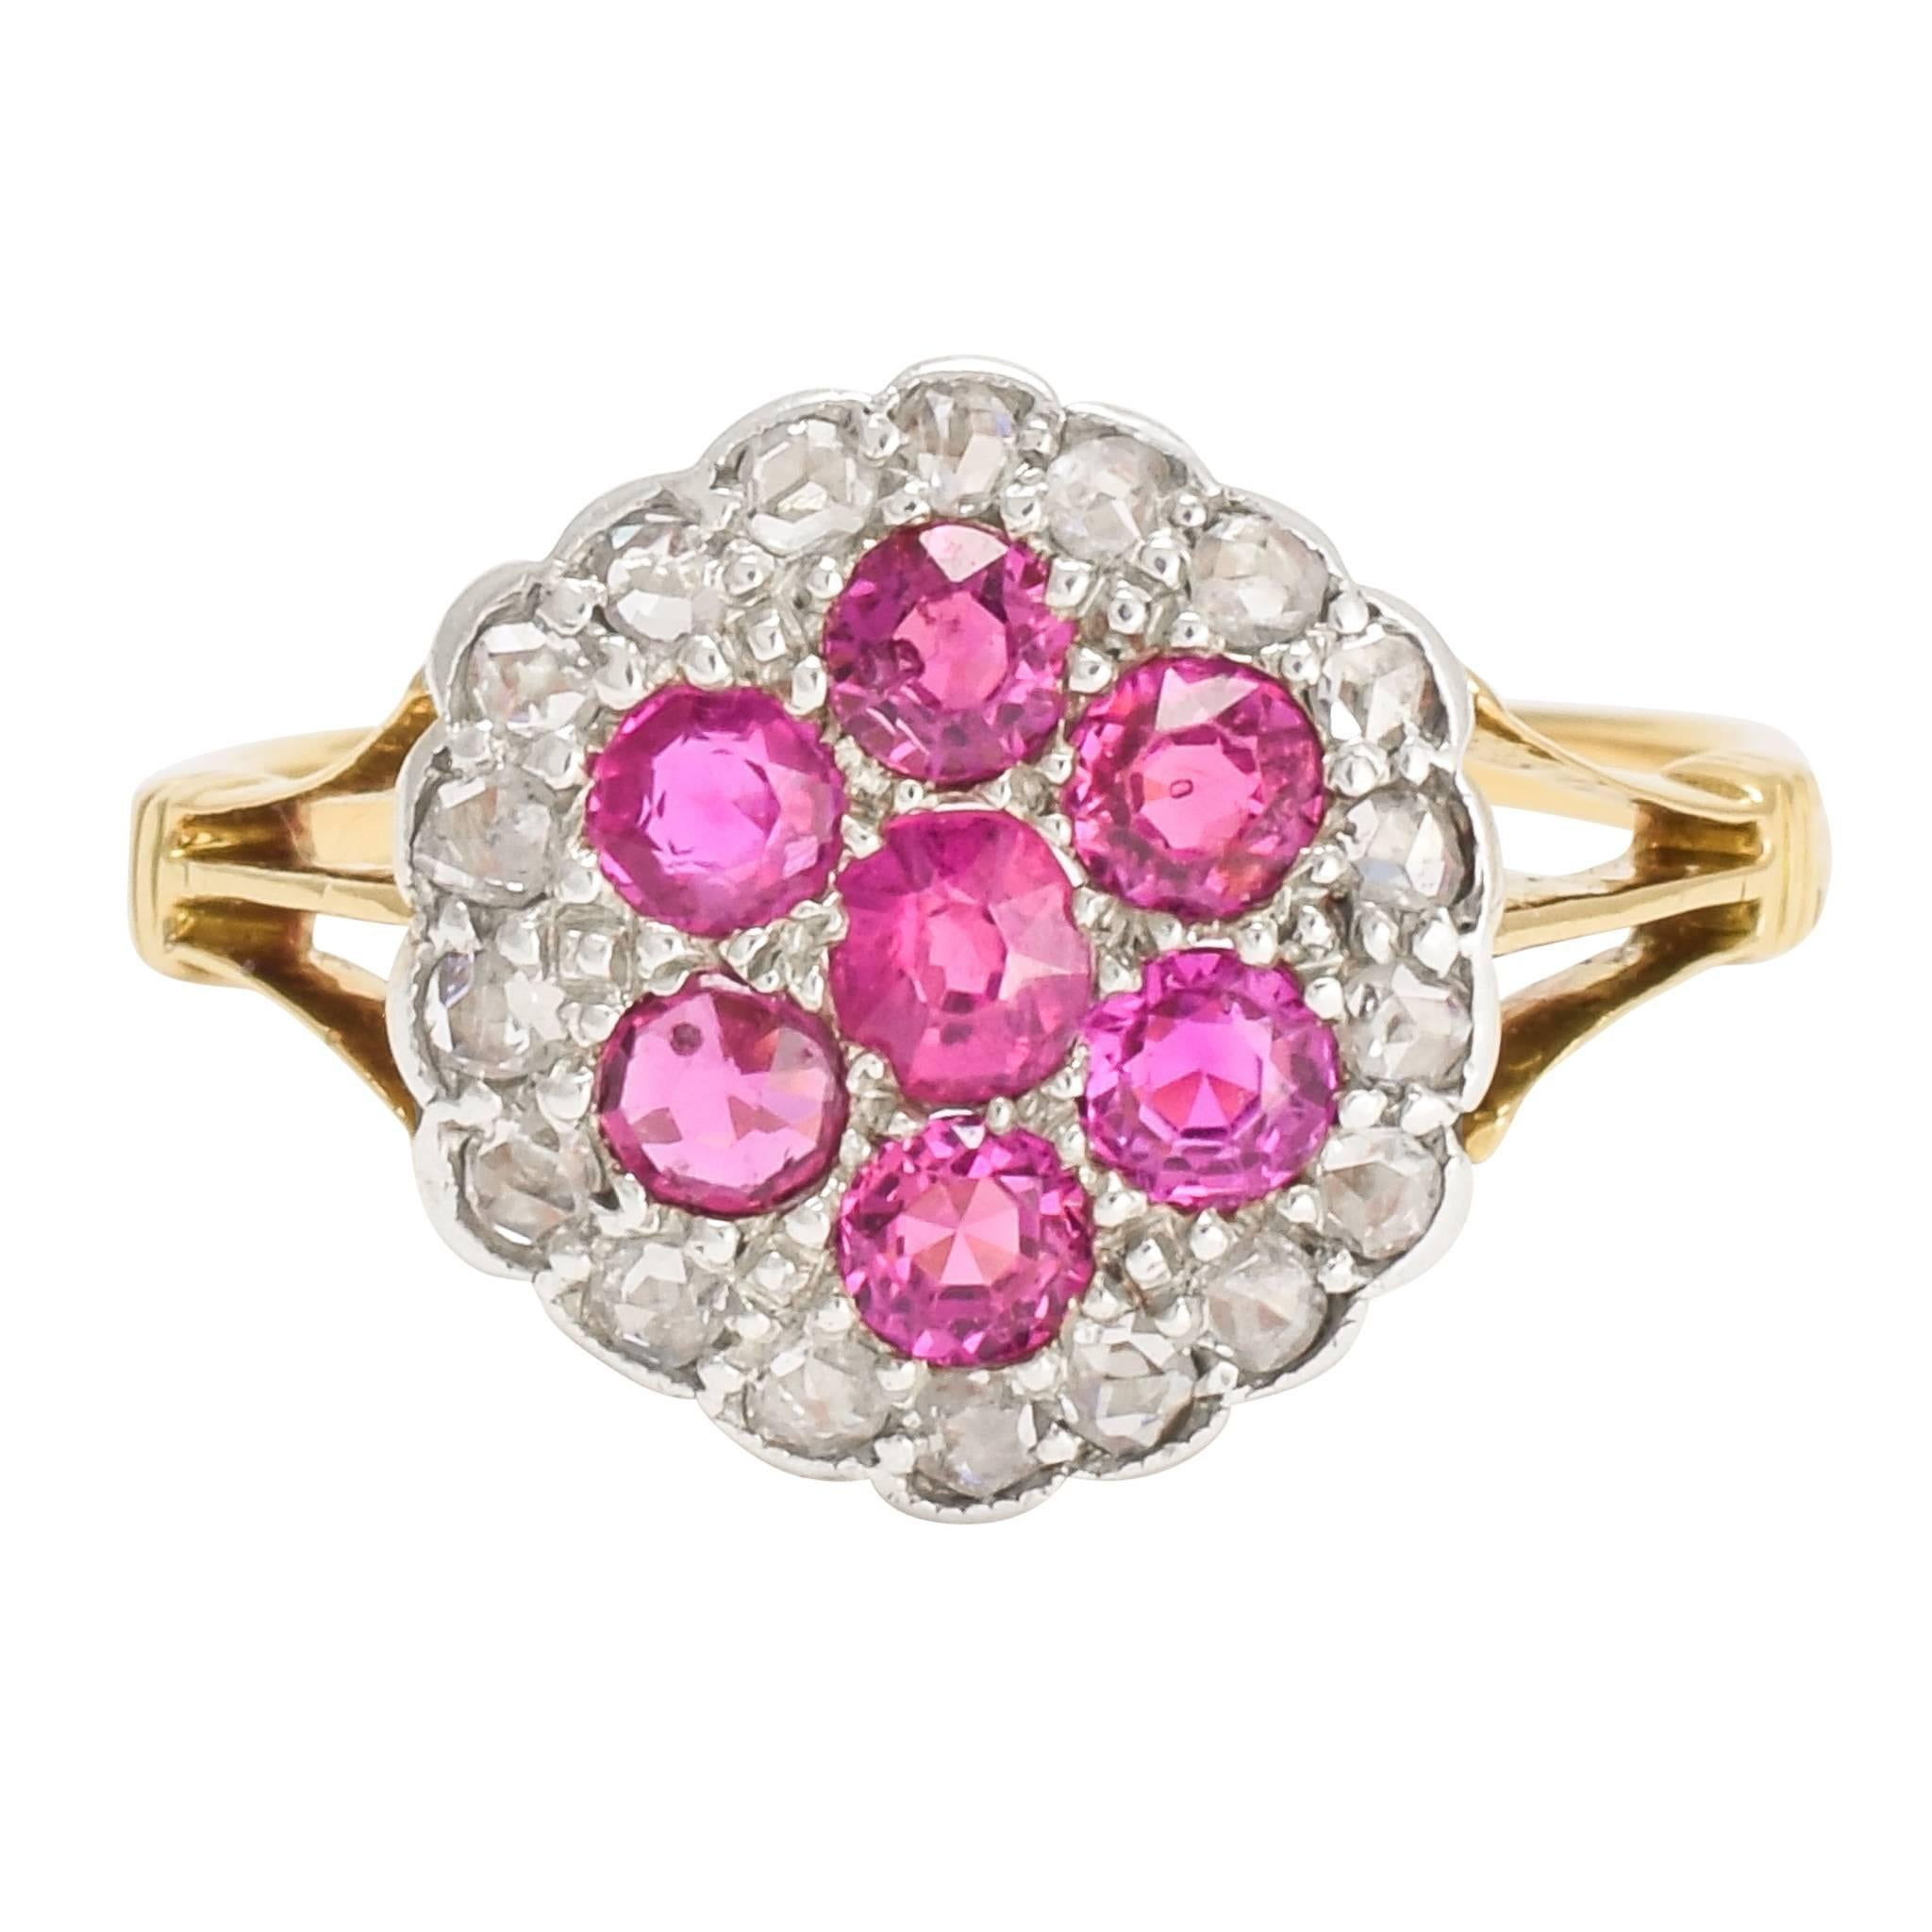 Antique French Edwardian Ruby Diamond Ring For Sale at 1stdibs